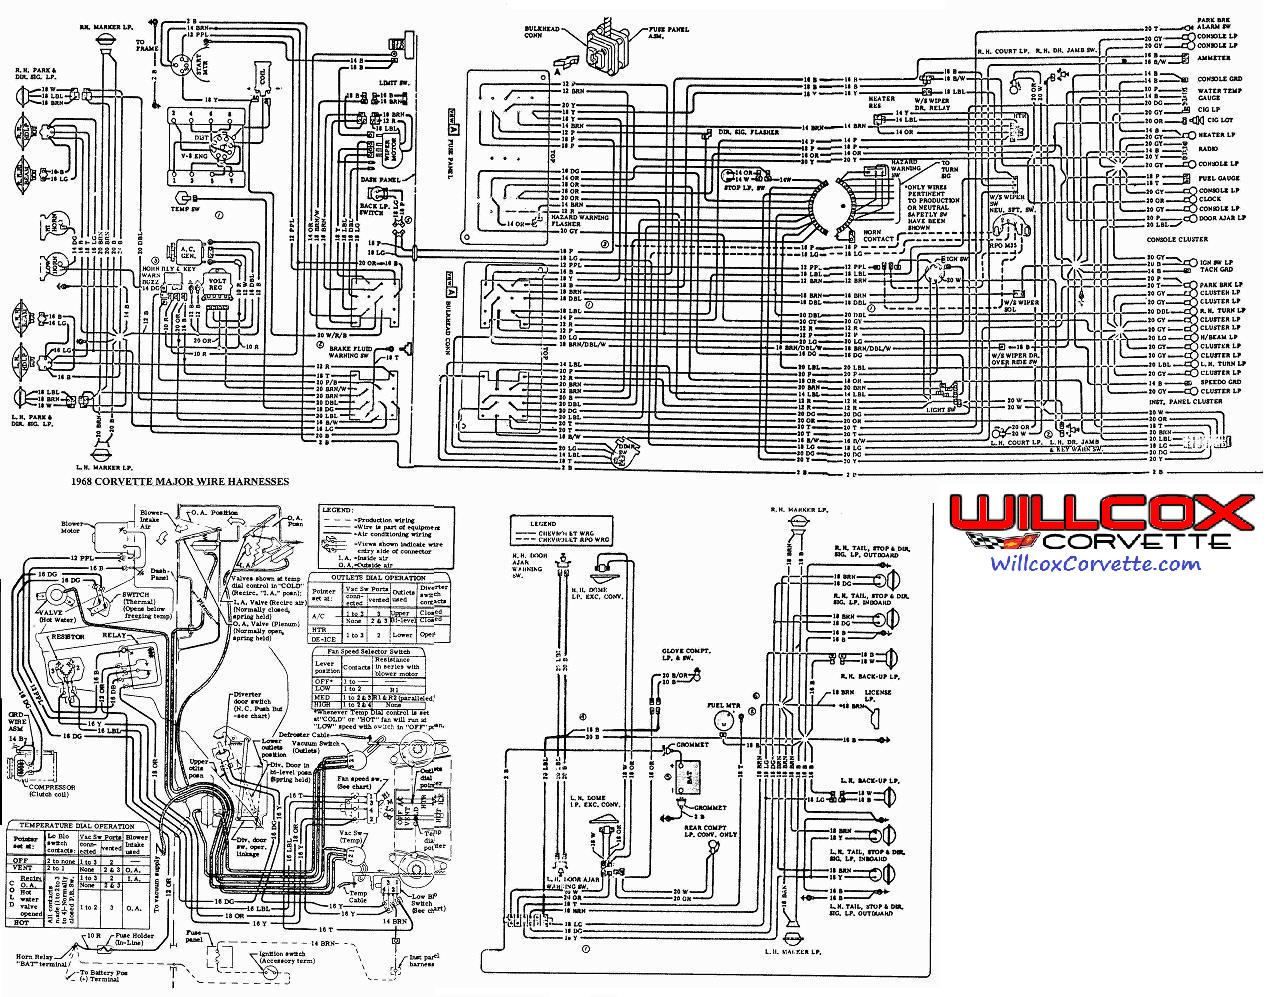 1968 Corvette Wire Schematic 68 Corvette From The AIM